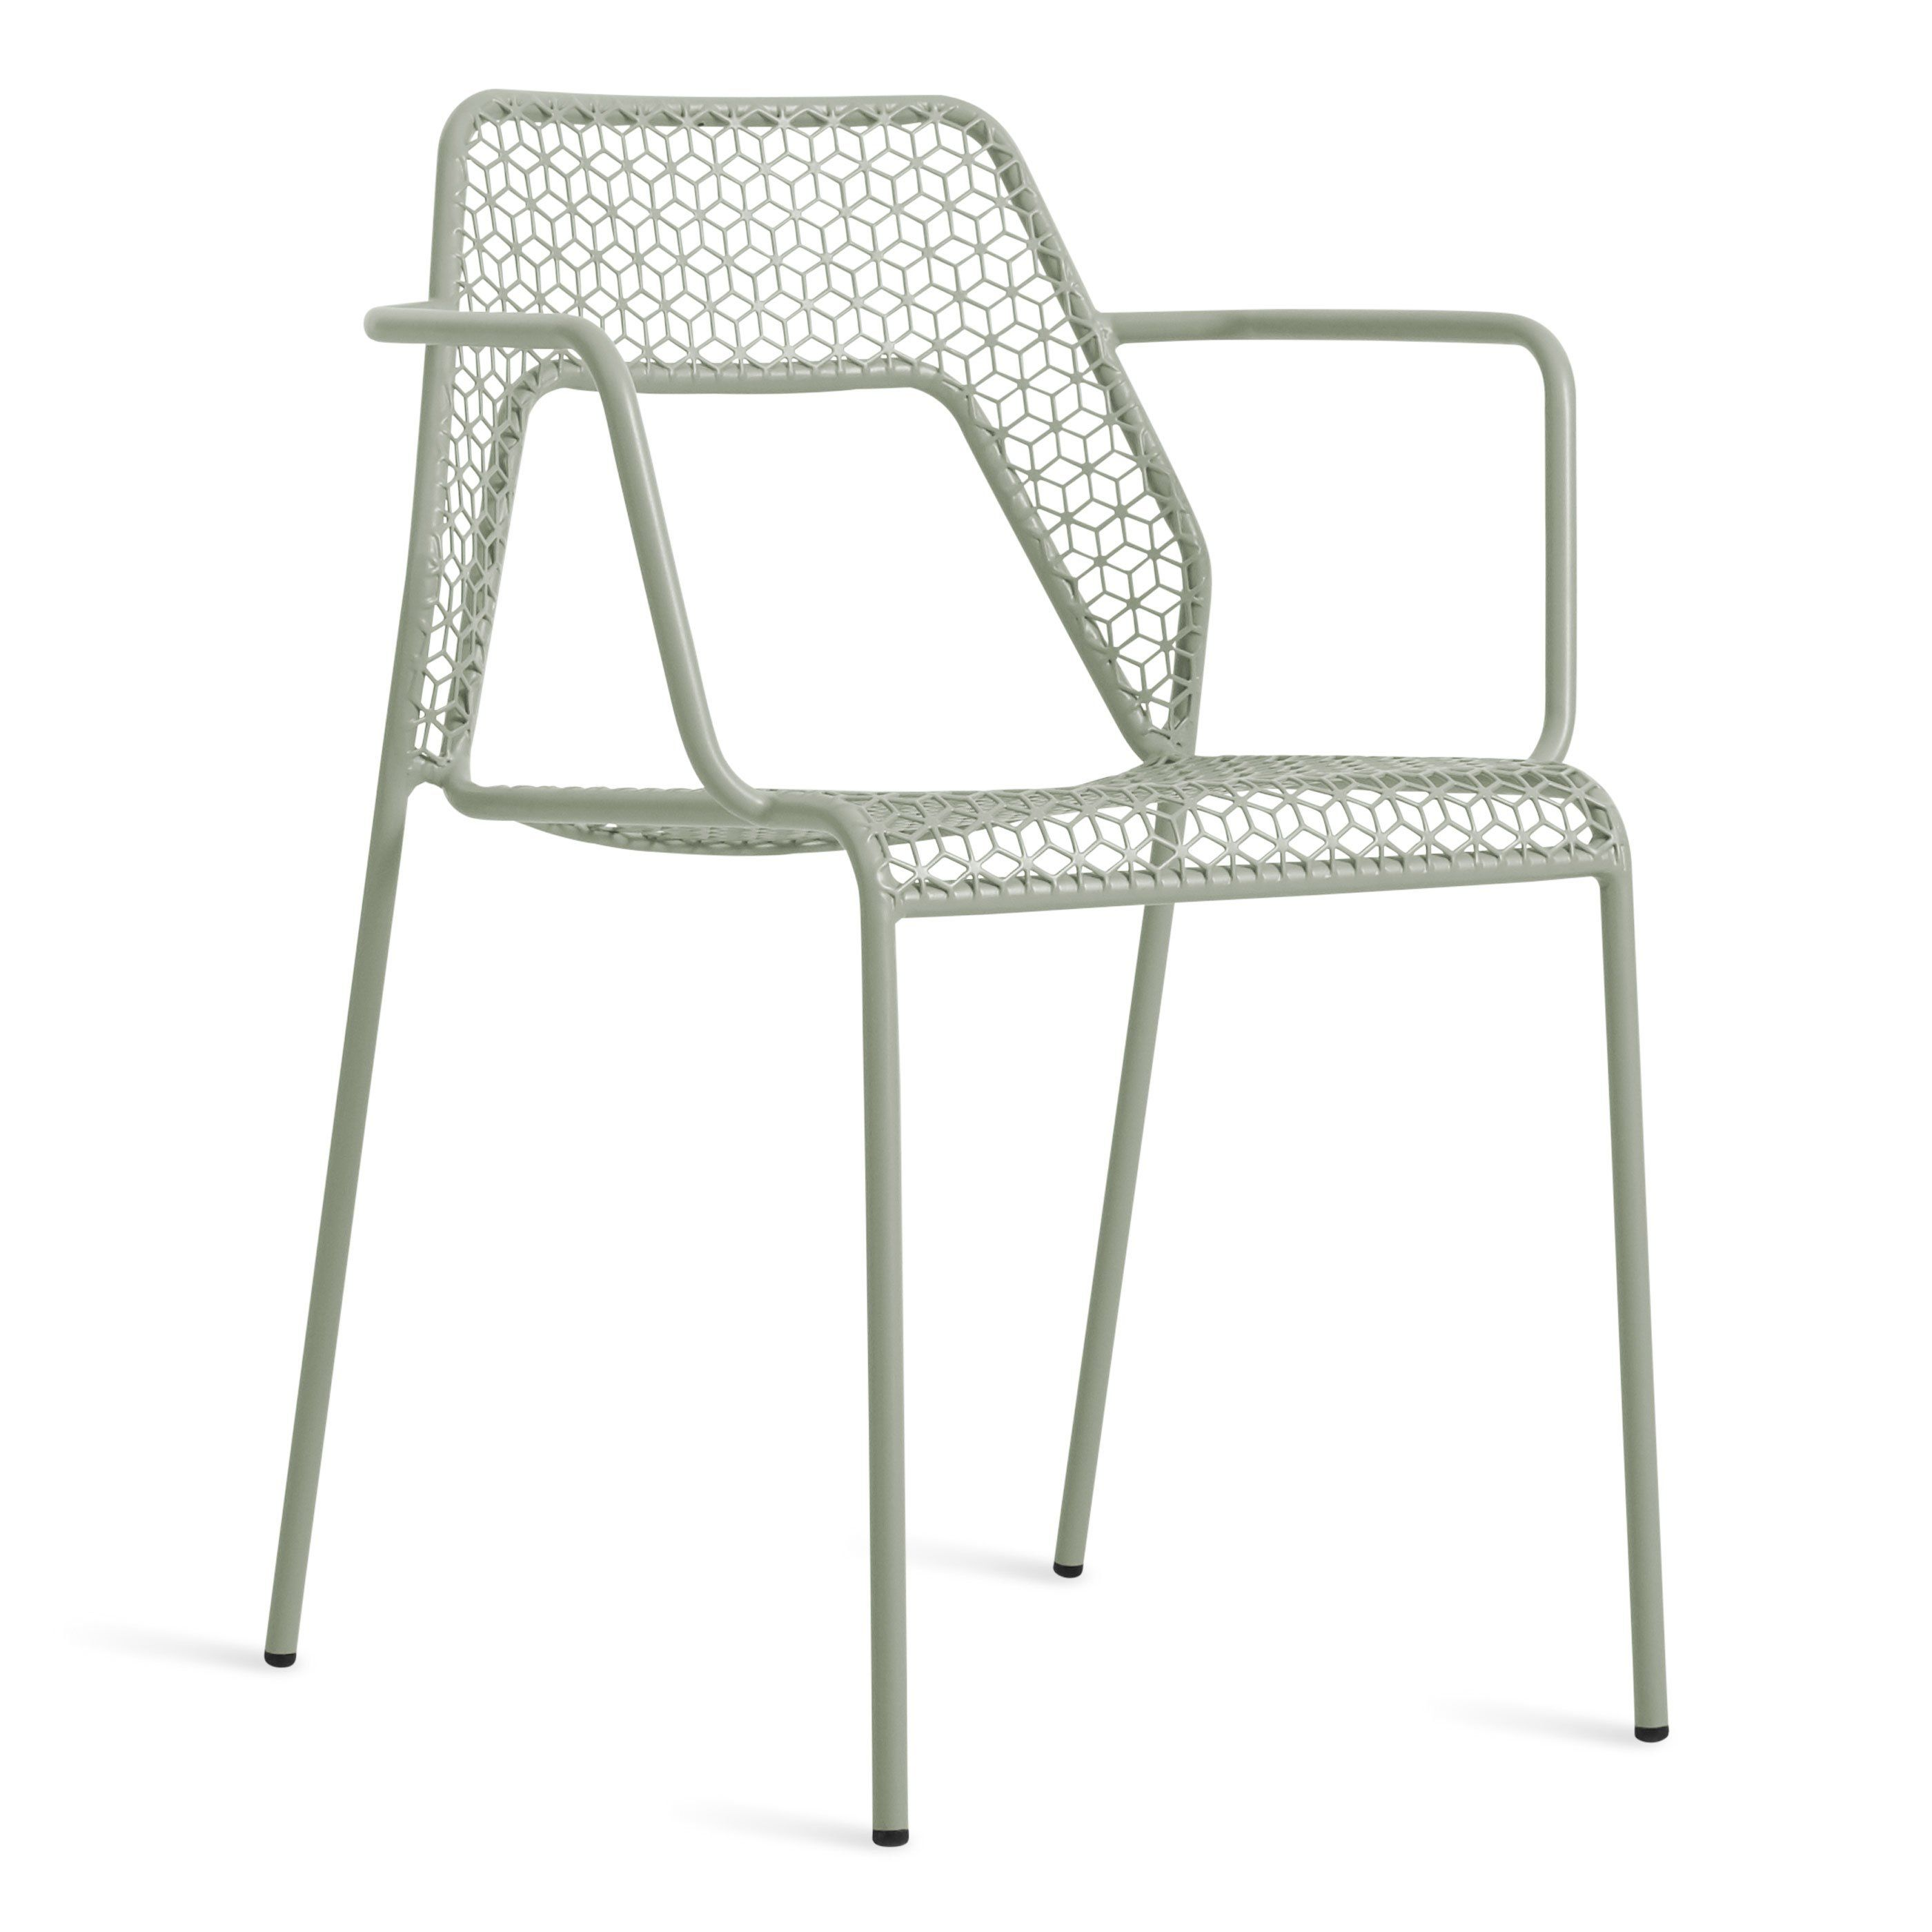 Hot Mesh Armchair In 2020 Modern Outdoor Furniture Modern Armchair Armchairs For Sale